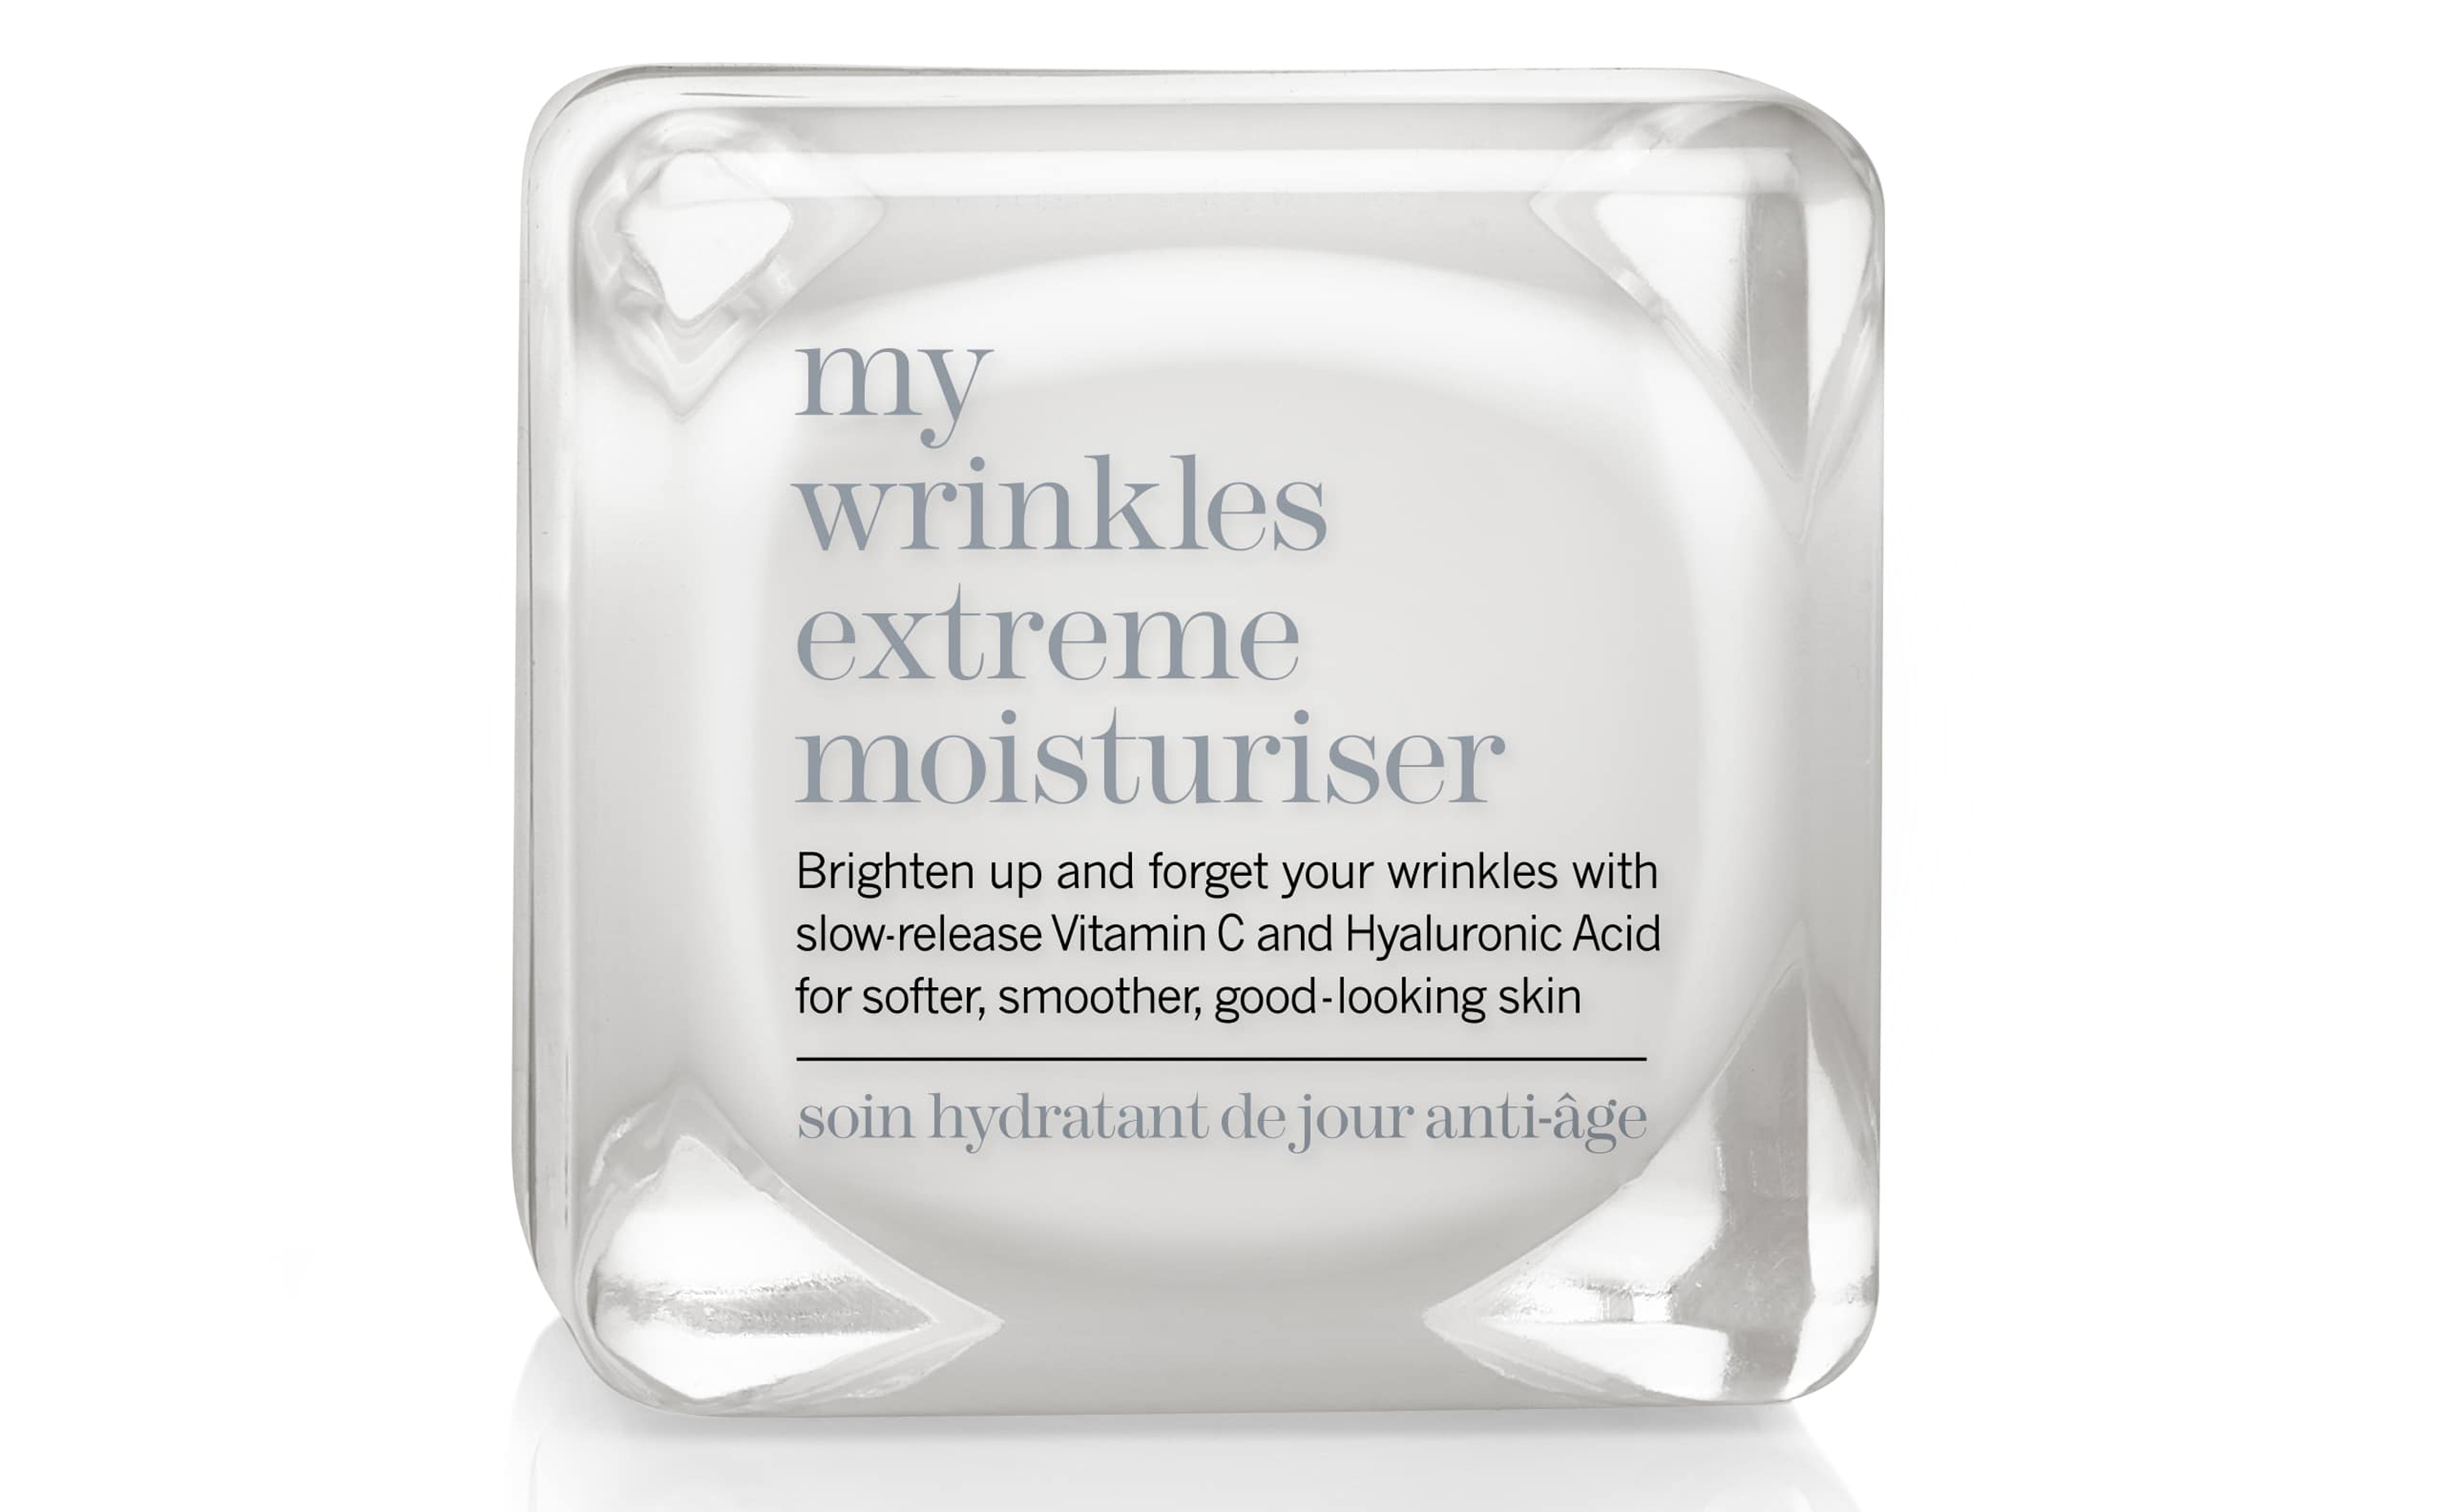 This Works No Wrinkles Extreme Moisturiser, 48 ml, AED346.00